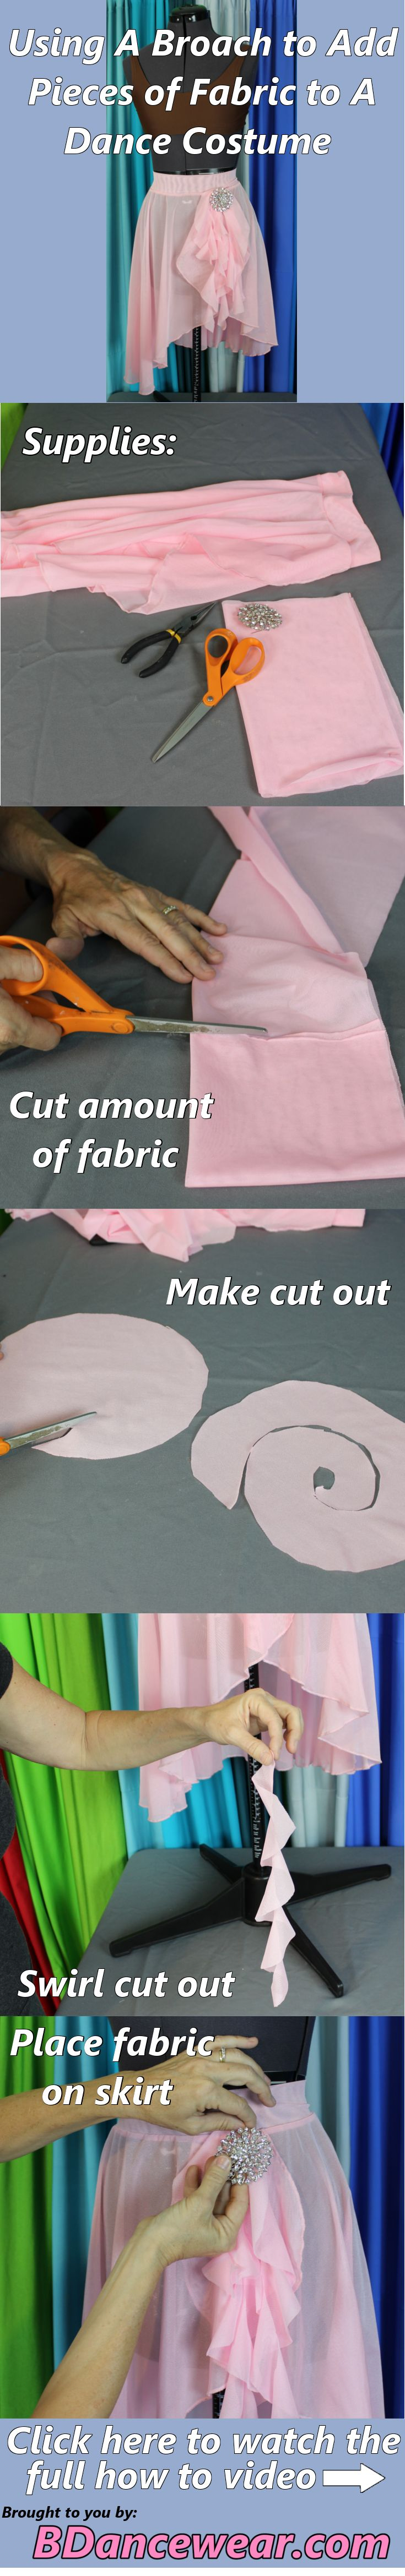 How to use a broach to add pieces of fabric to a dance costume.